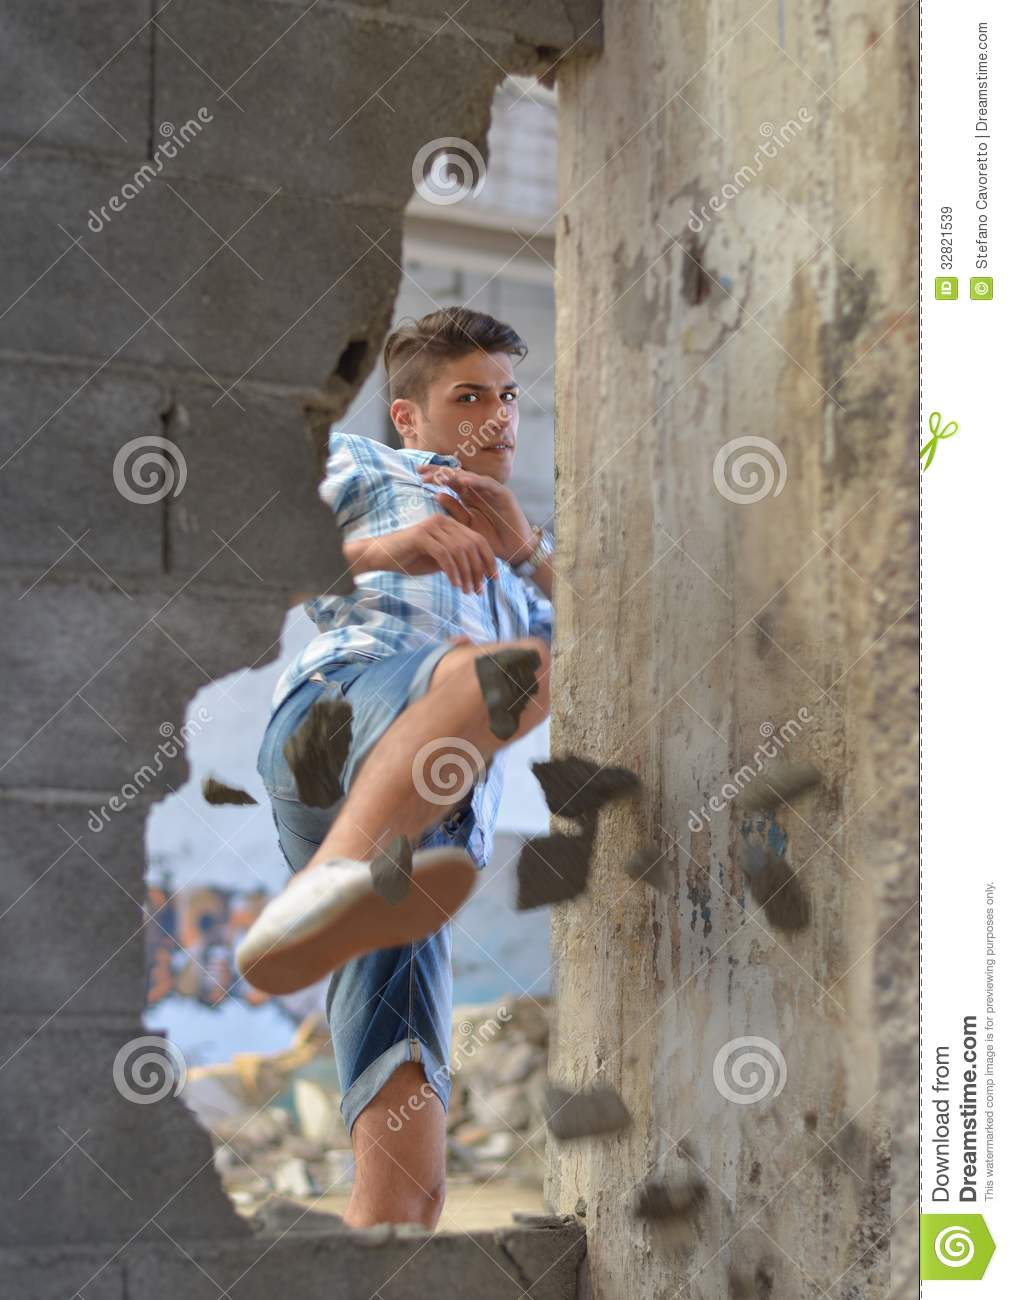 Young man breaking through wall with a kick